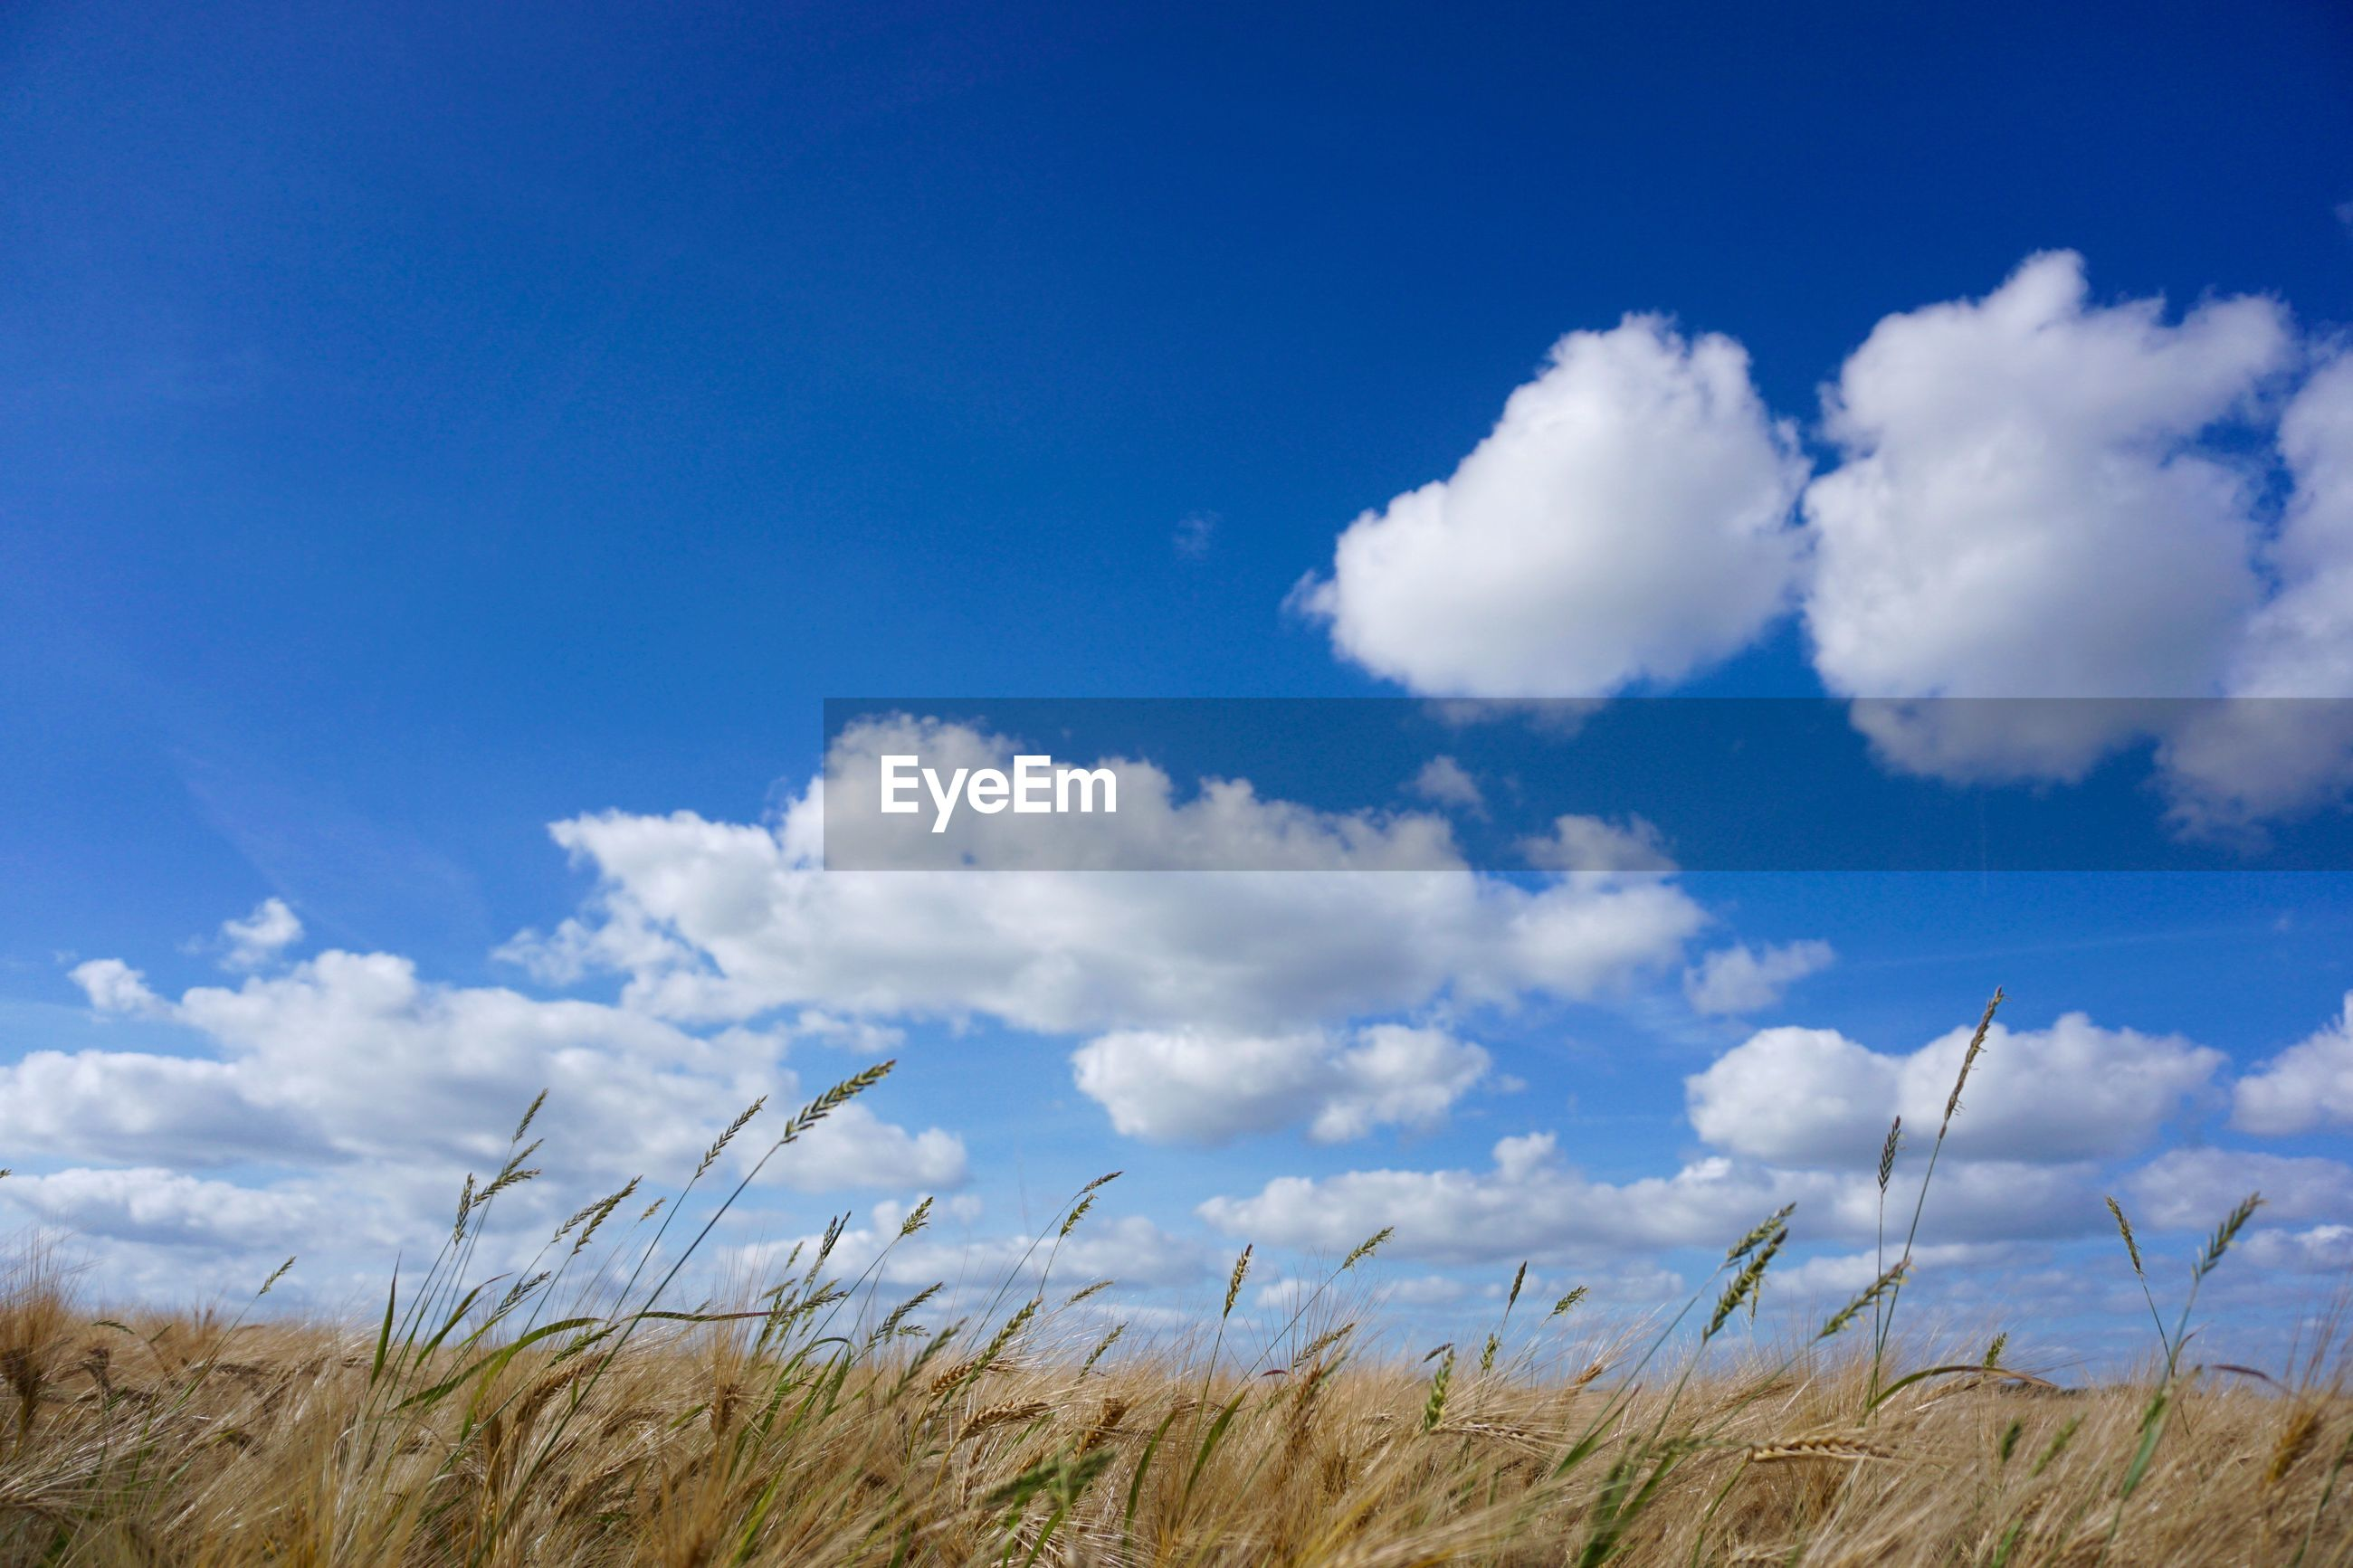 SCENIC VIEW OF BLUE SKY OVER FIELD